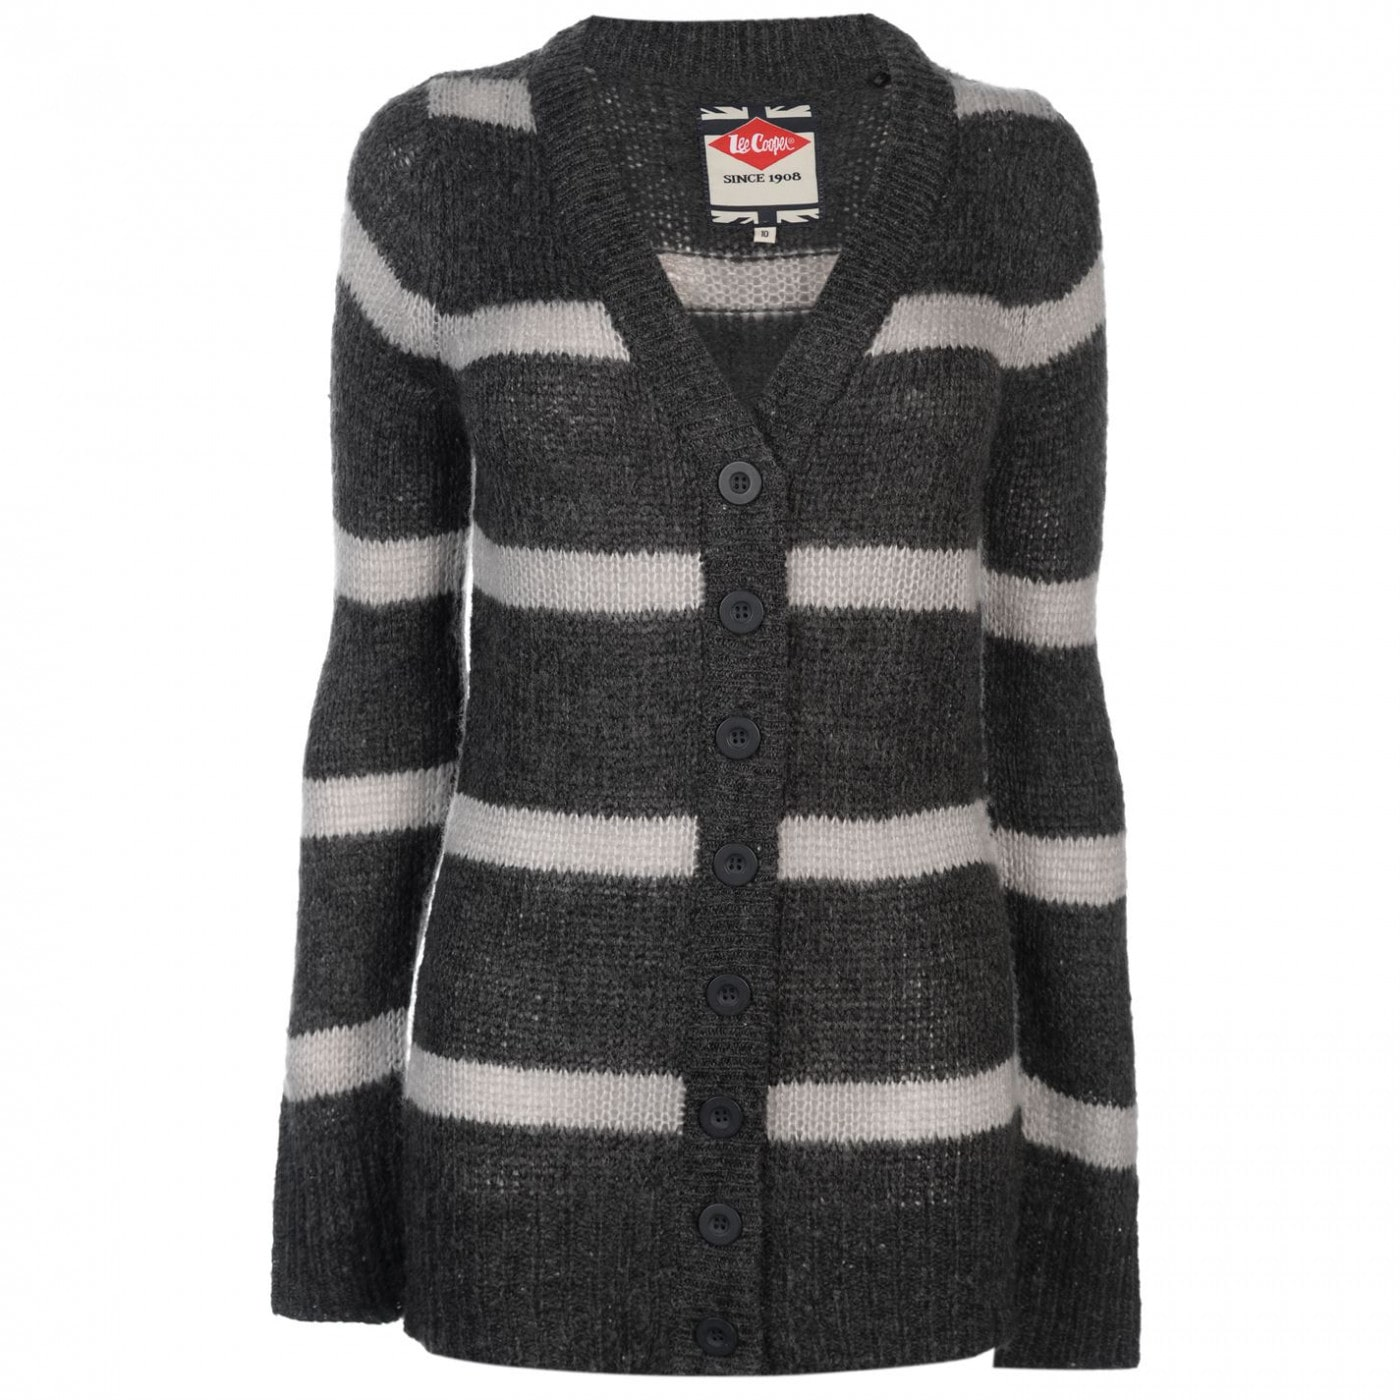 ab79d56b741a5 Lee Cooper Essential Stripe Cardigan Ladies - FACTCOOL